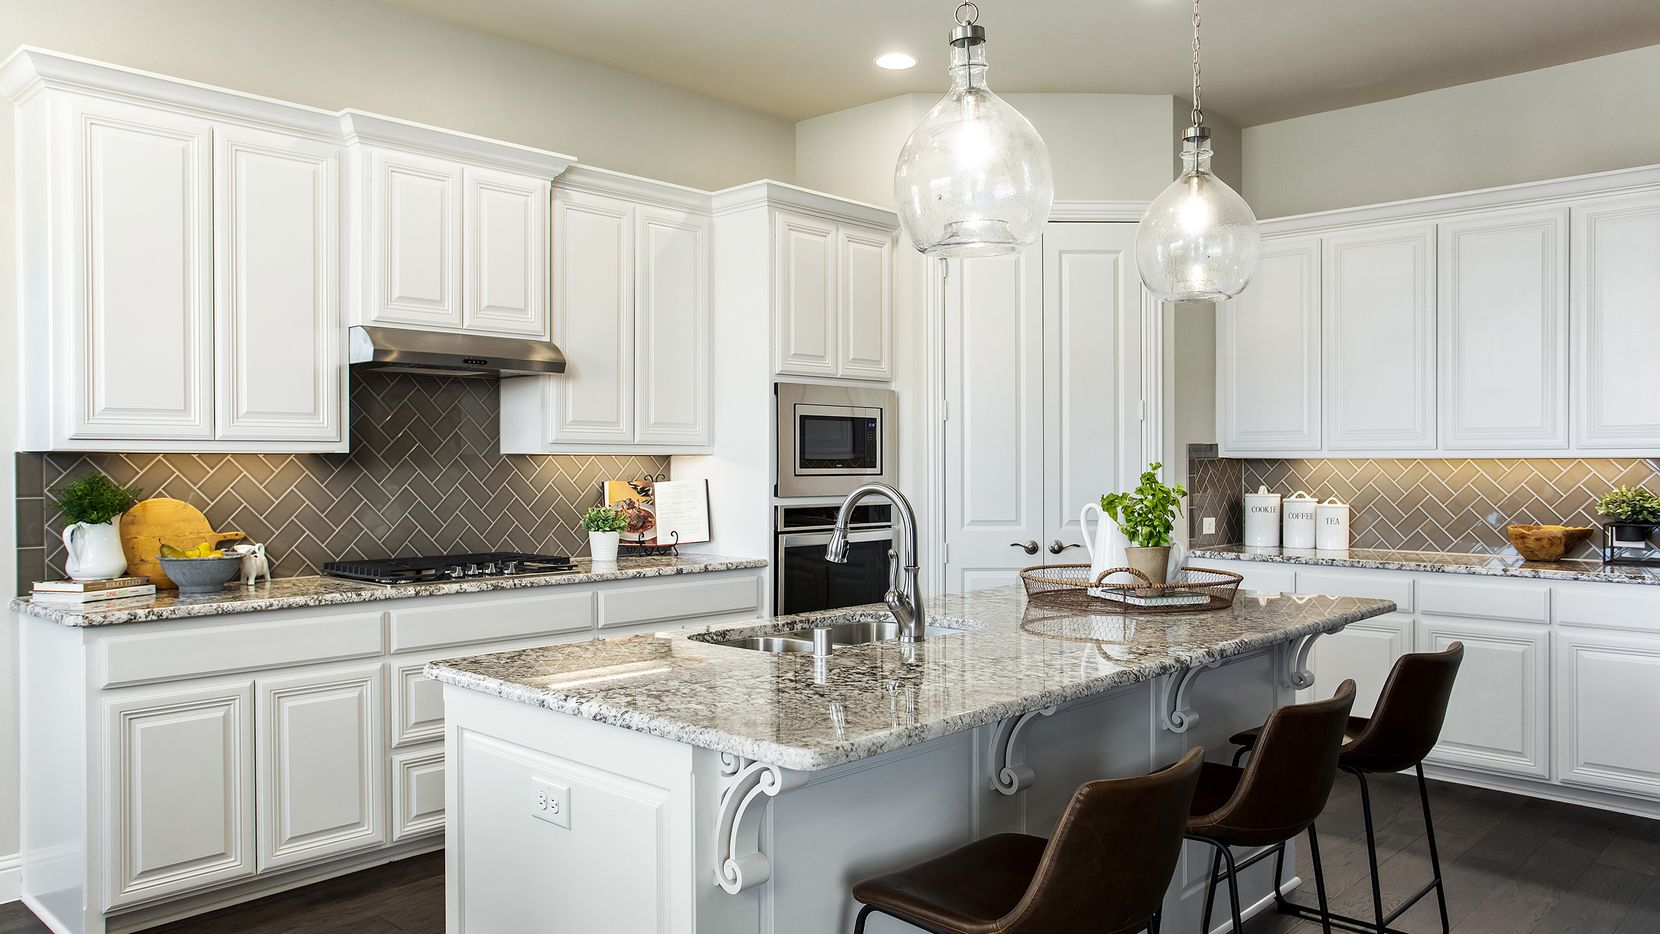 Move-in-ready homes are available at special pricing in Orchard Flower, an award-winning 55-plus community in Flower Mound.